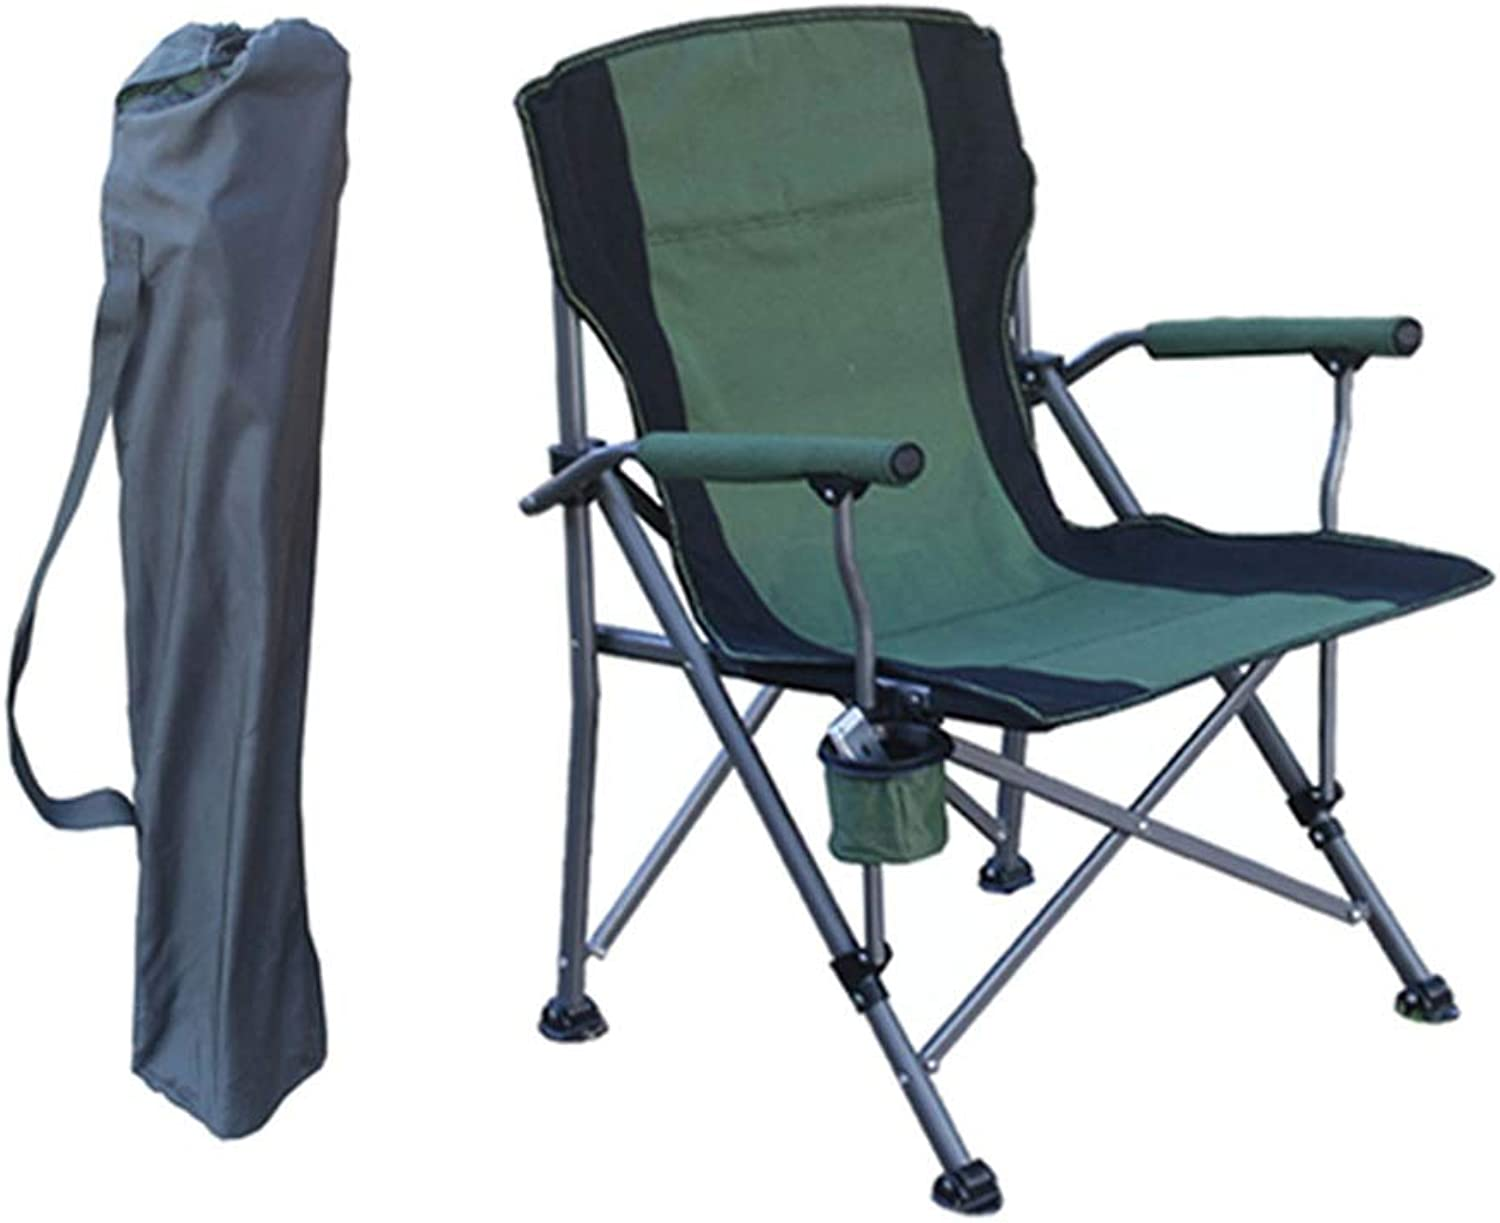 Lounge Chairs Folding Camping Recliner Portable Chair Beach Fishing Barbecue with Cup Holder, Bearing 120kg, Green